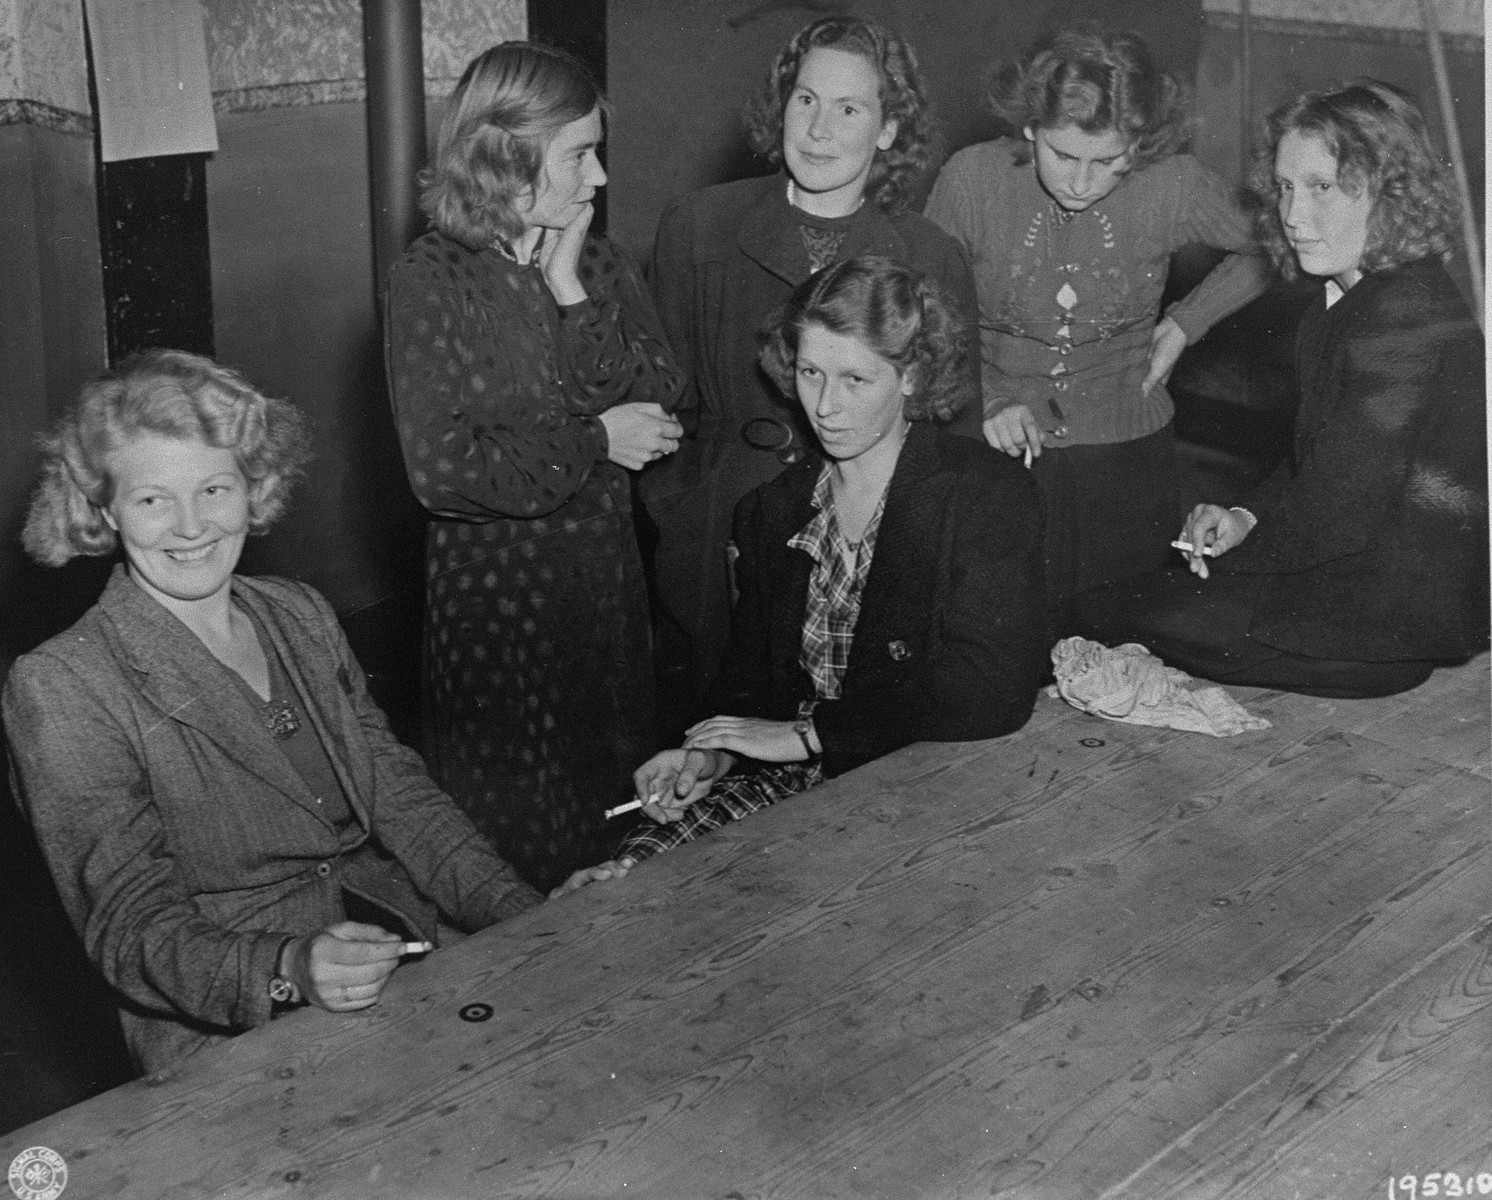 Women accused of collaborating with the Germans await their fate after being arrested by the Dutch resistance.  Their heads will be shaved and they will be marched through the streets of Grave.